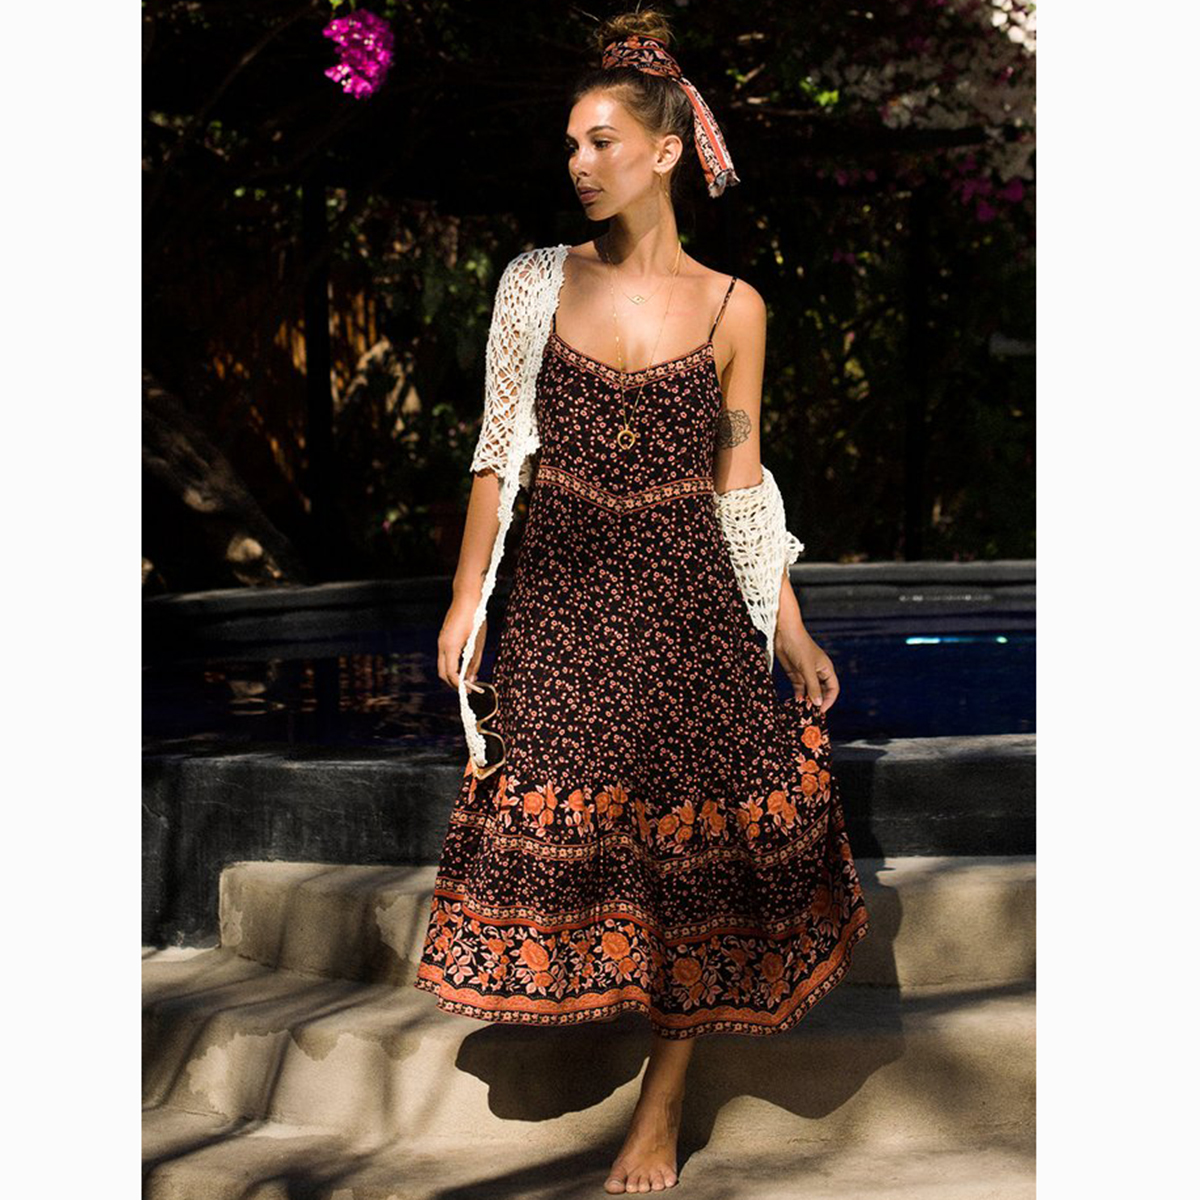 02da3b040ba6c Plum Floral Boho Chic Maxi Dress Women 2019 Summer Sleeveless Strapless  Sexy Dress Ladies Bohemian Hippie Beach Party Long Dress-in Dresses from ...